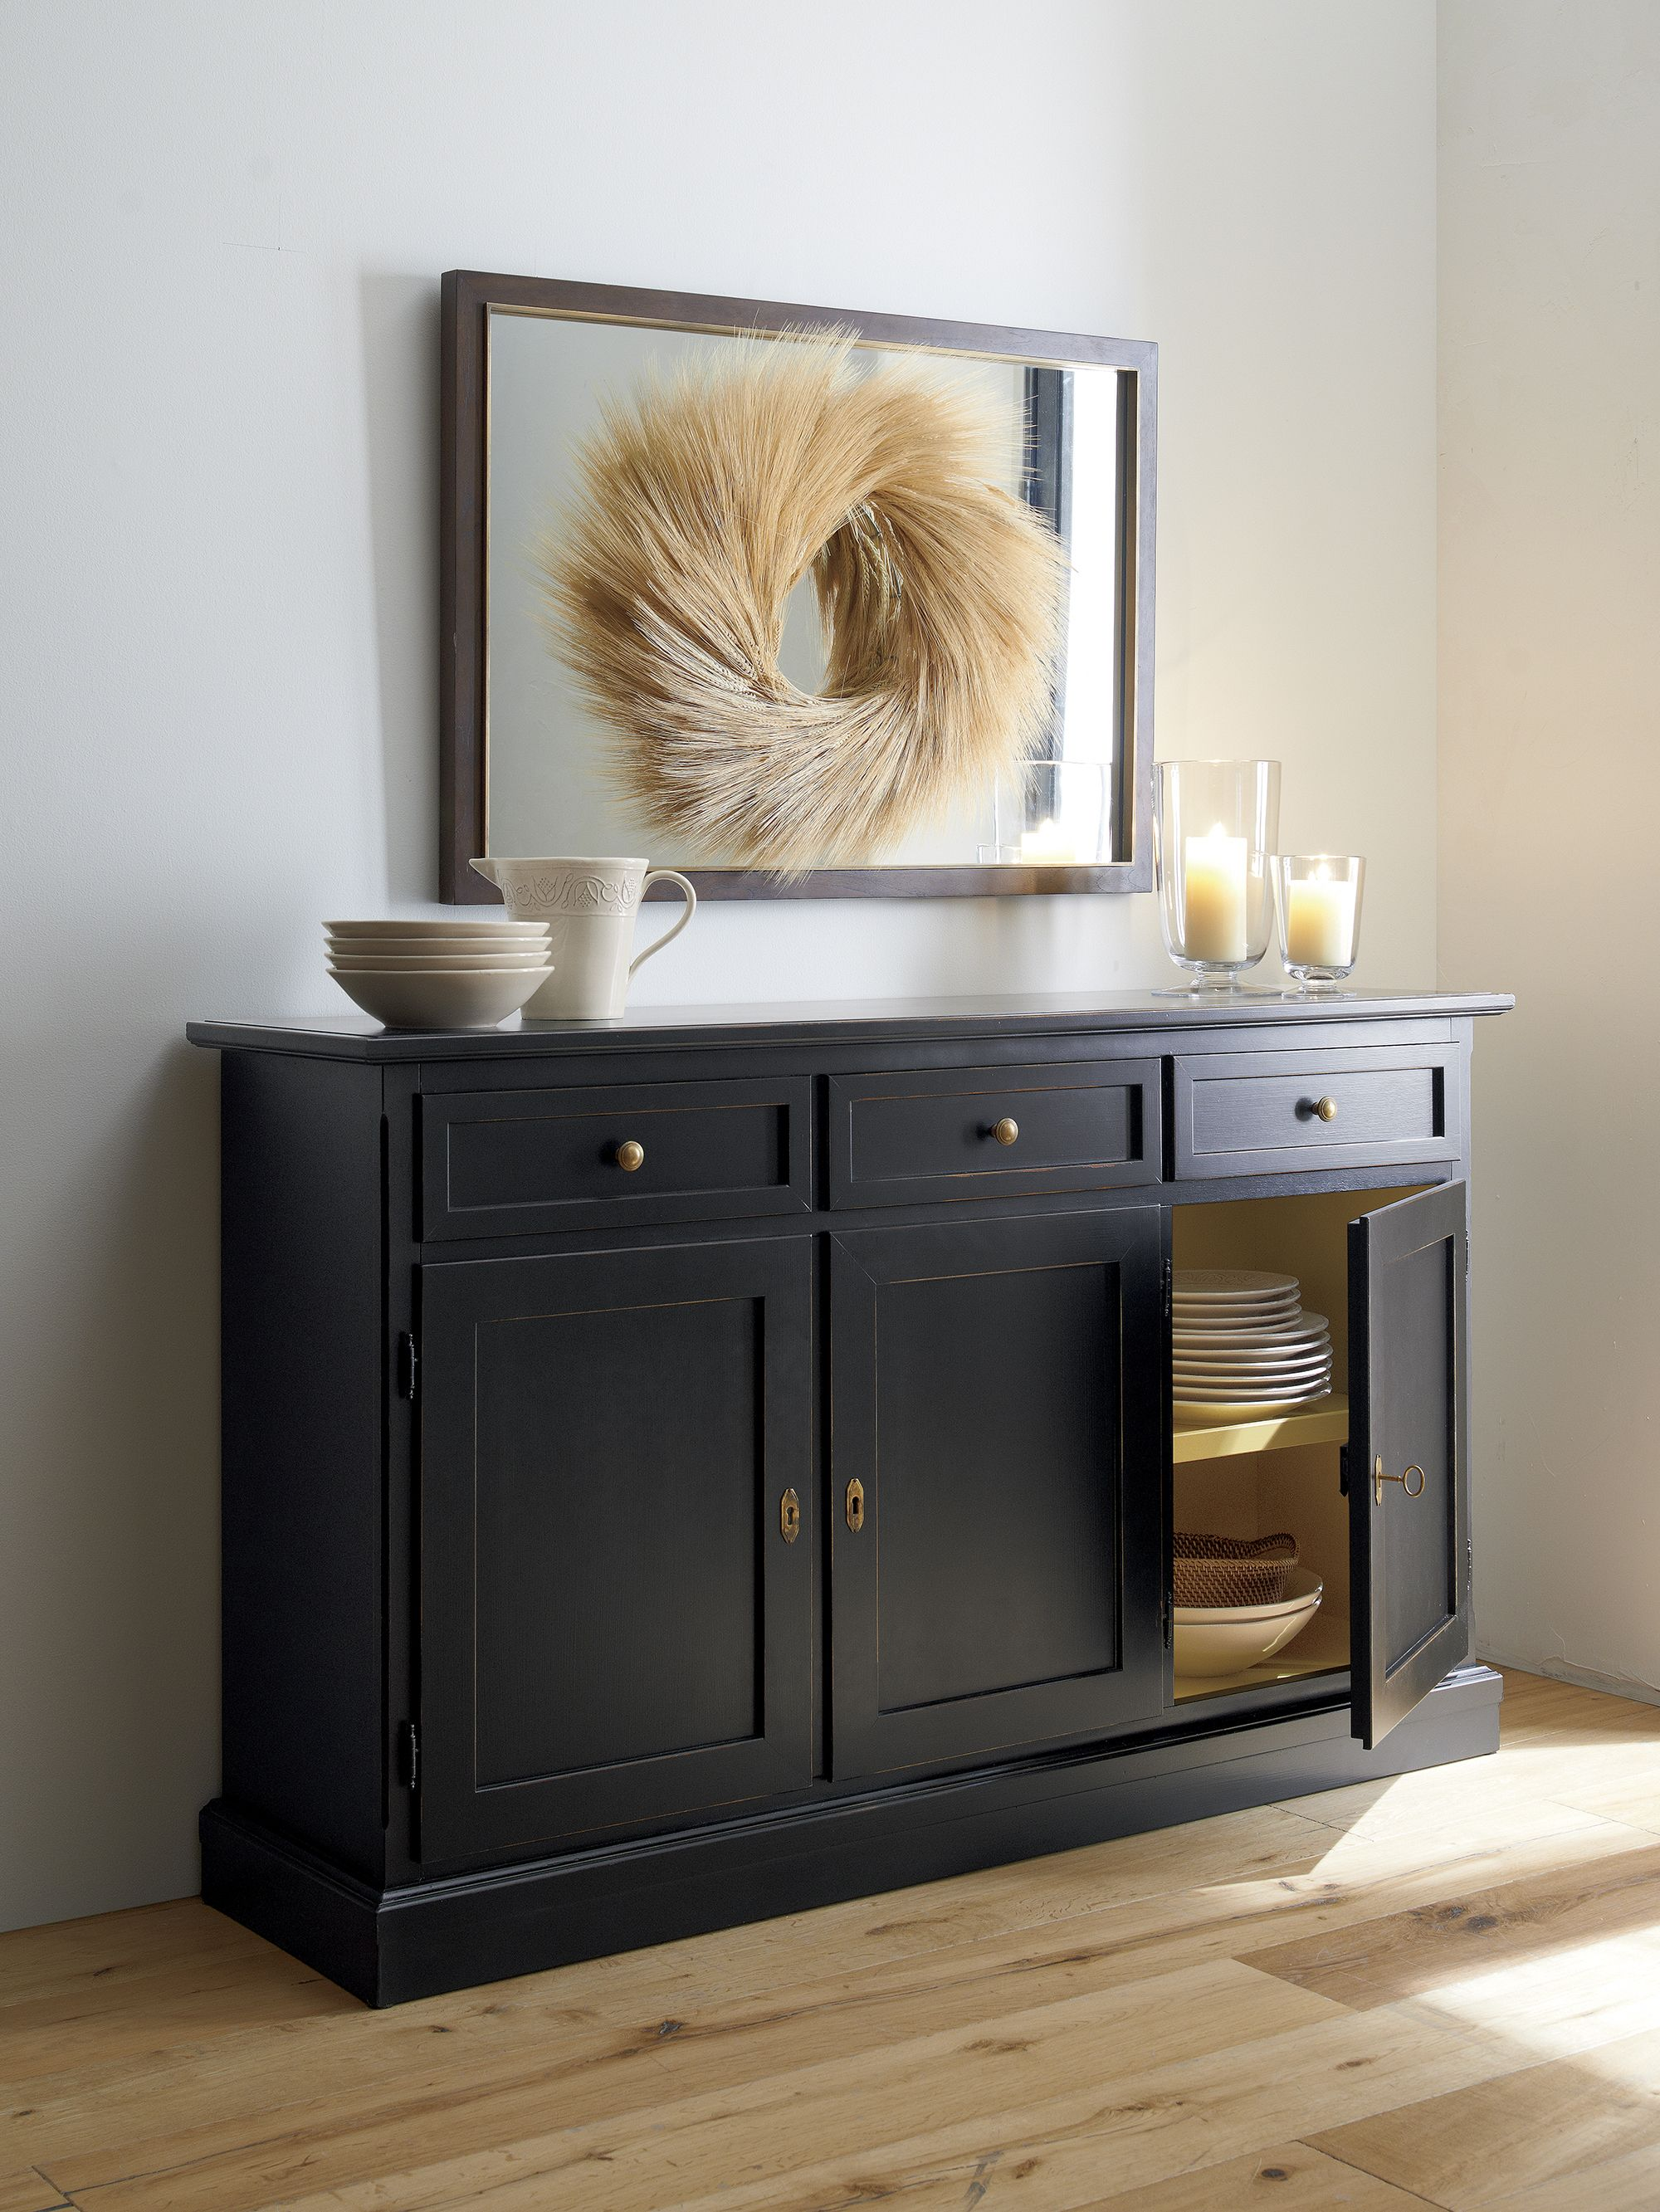 Pranzos generously proportioned sideboard is crafted from solid european hardwood and tanganyika walnut hand distressed in our rustic black finish with